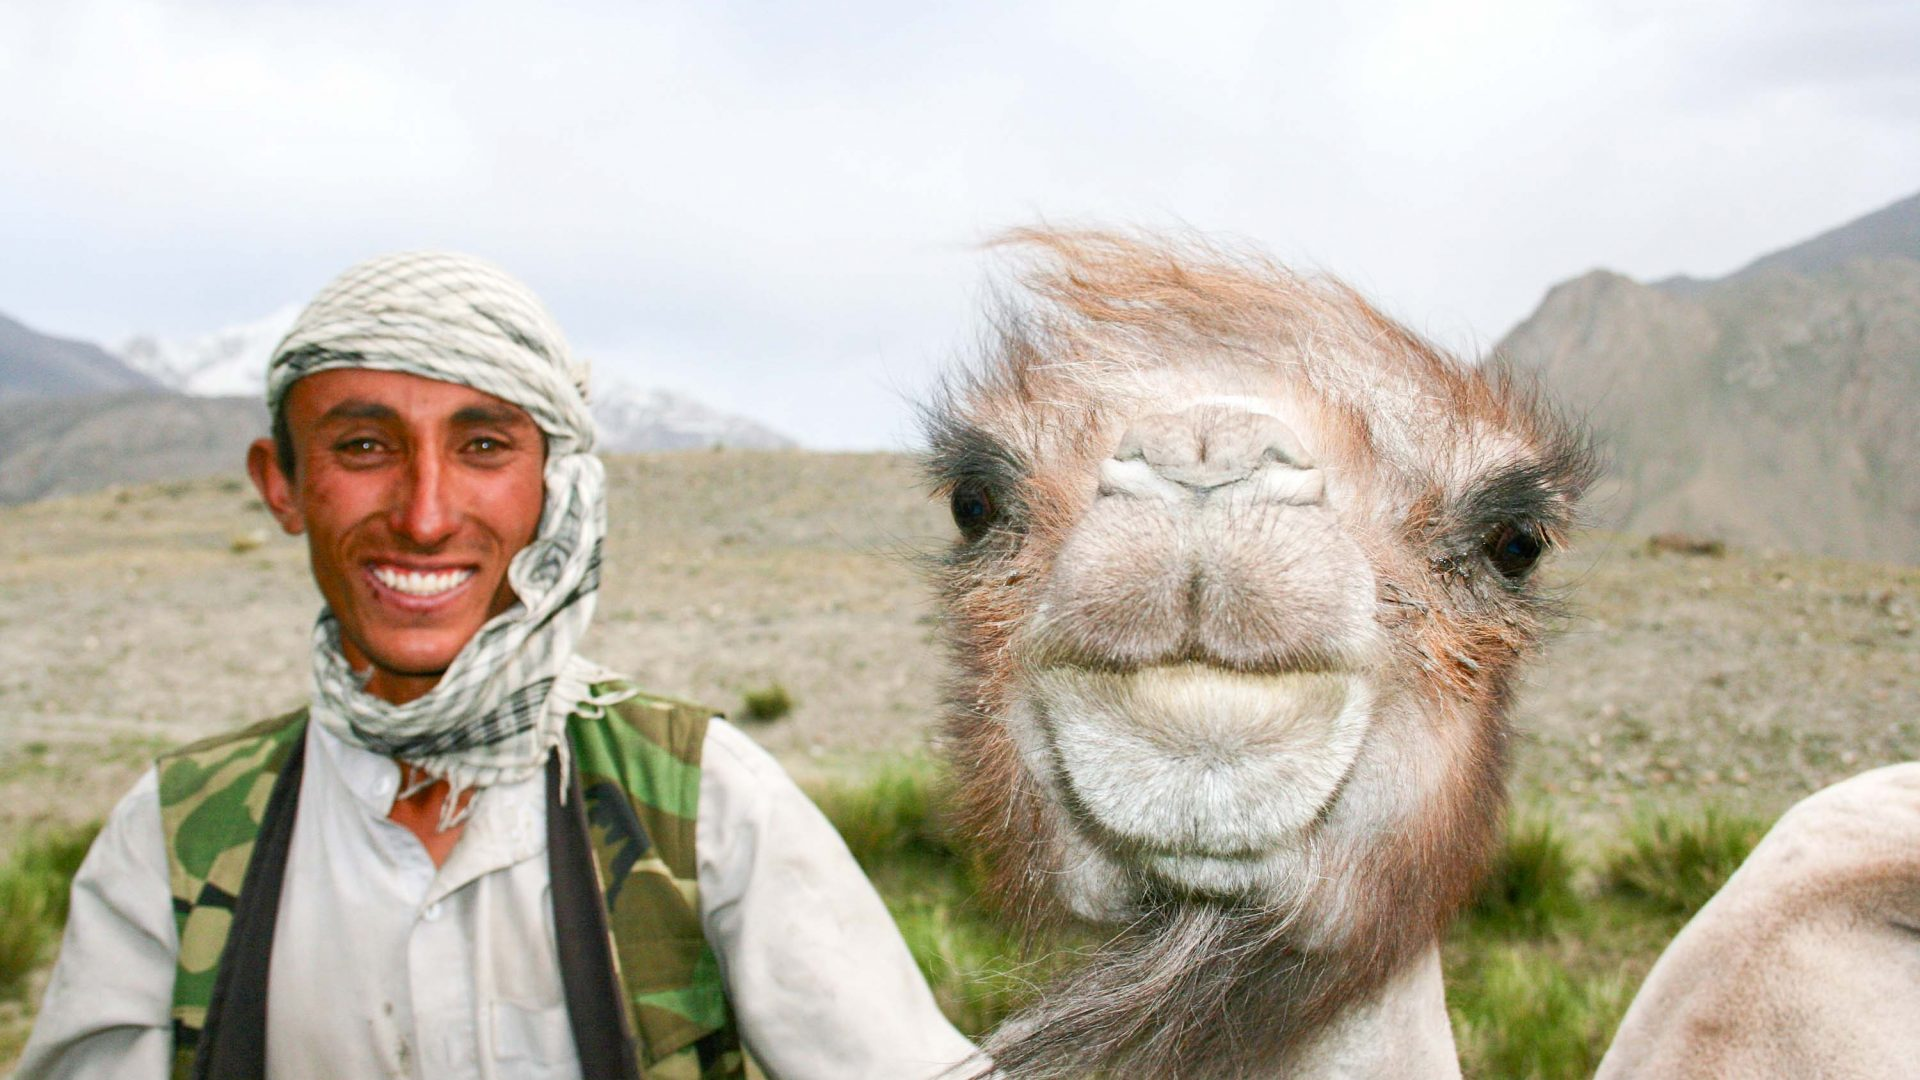 A man and his camel in the Wakhan, Afghanistan.